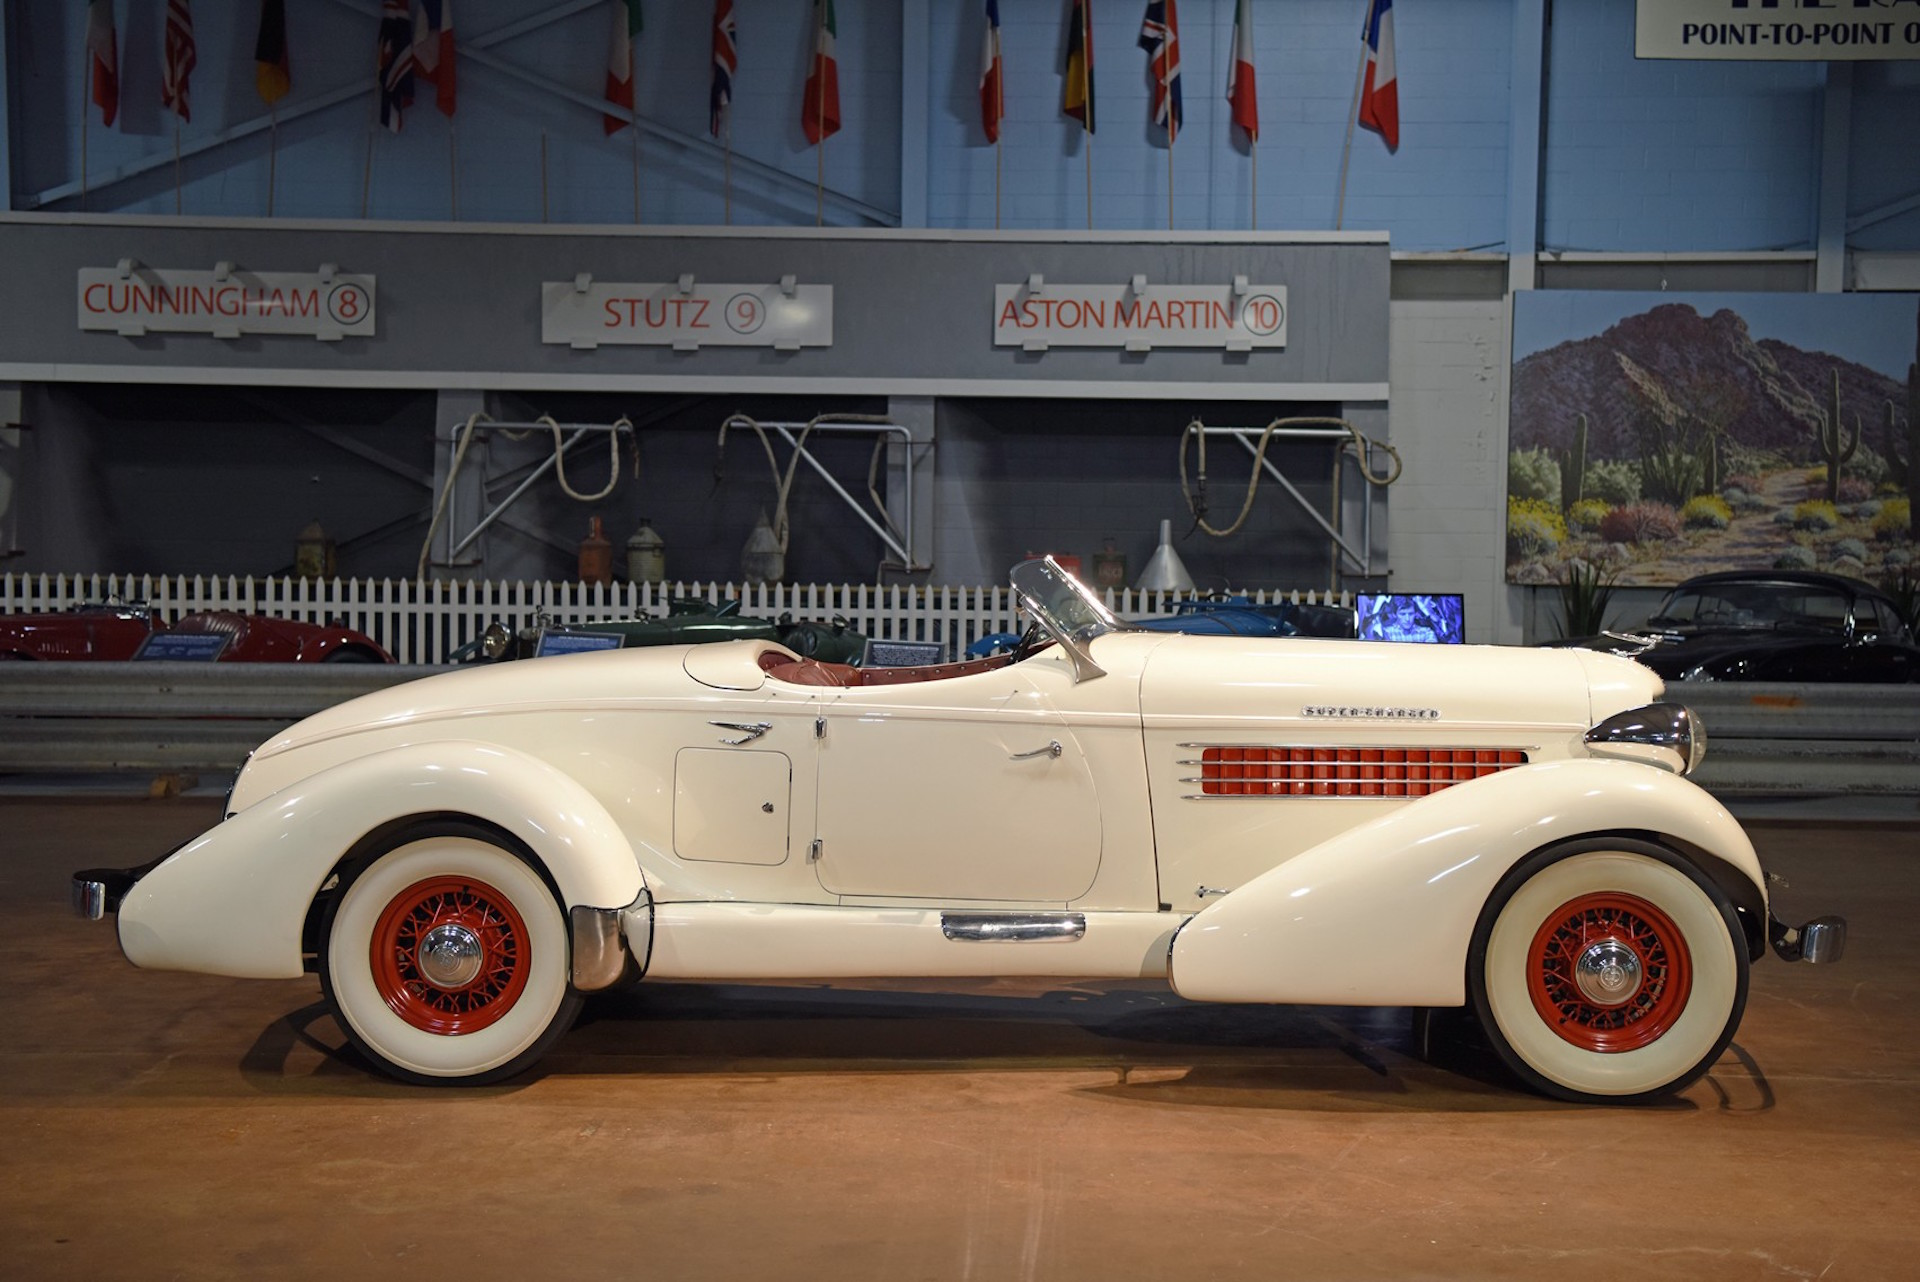 Vintage Car Posters and Vintage Cars on Display - The Drive